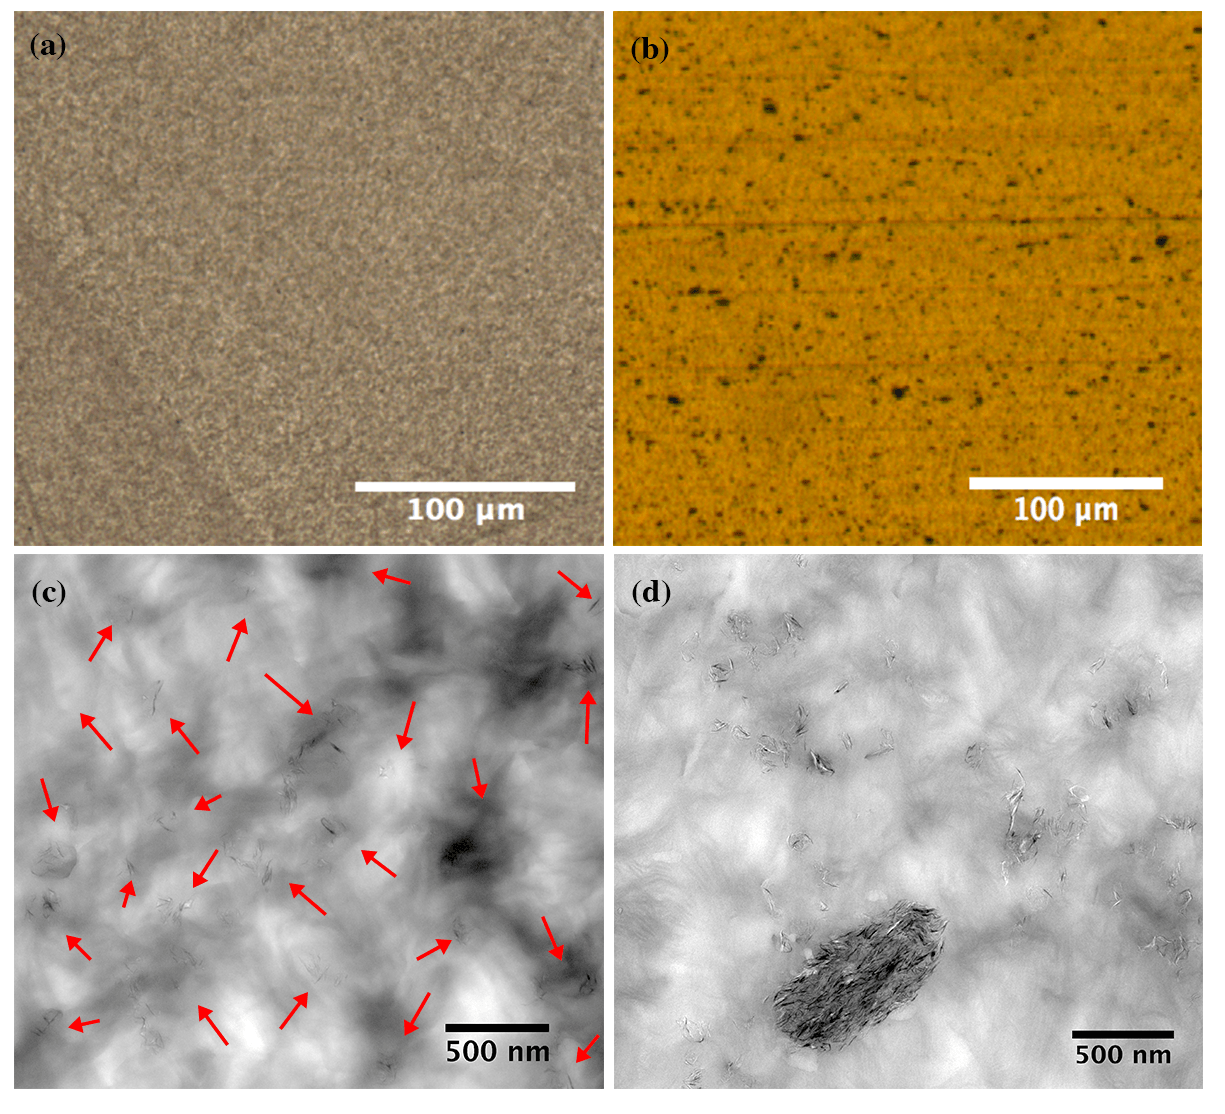 Figure 1. (a-b) Light microscopy images and (c-d) TEM images show the dispersion and distribution of 1 wt.% loading of graphene platelets within the multimodal-HDPE matrix. Images for the similar nanocomposite produced by a pre-existing processing protocol (right), were compared with PE-g-1% produced in this study (left). The TEM and light microscopy images were taken at 10k and 20x, respectively.